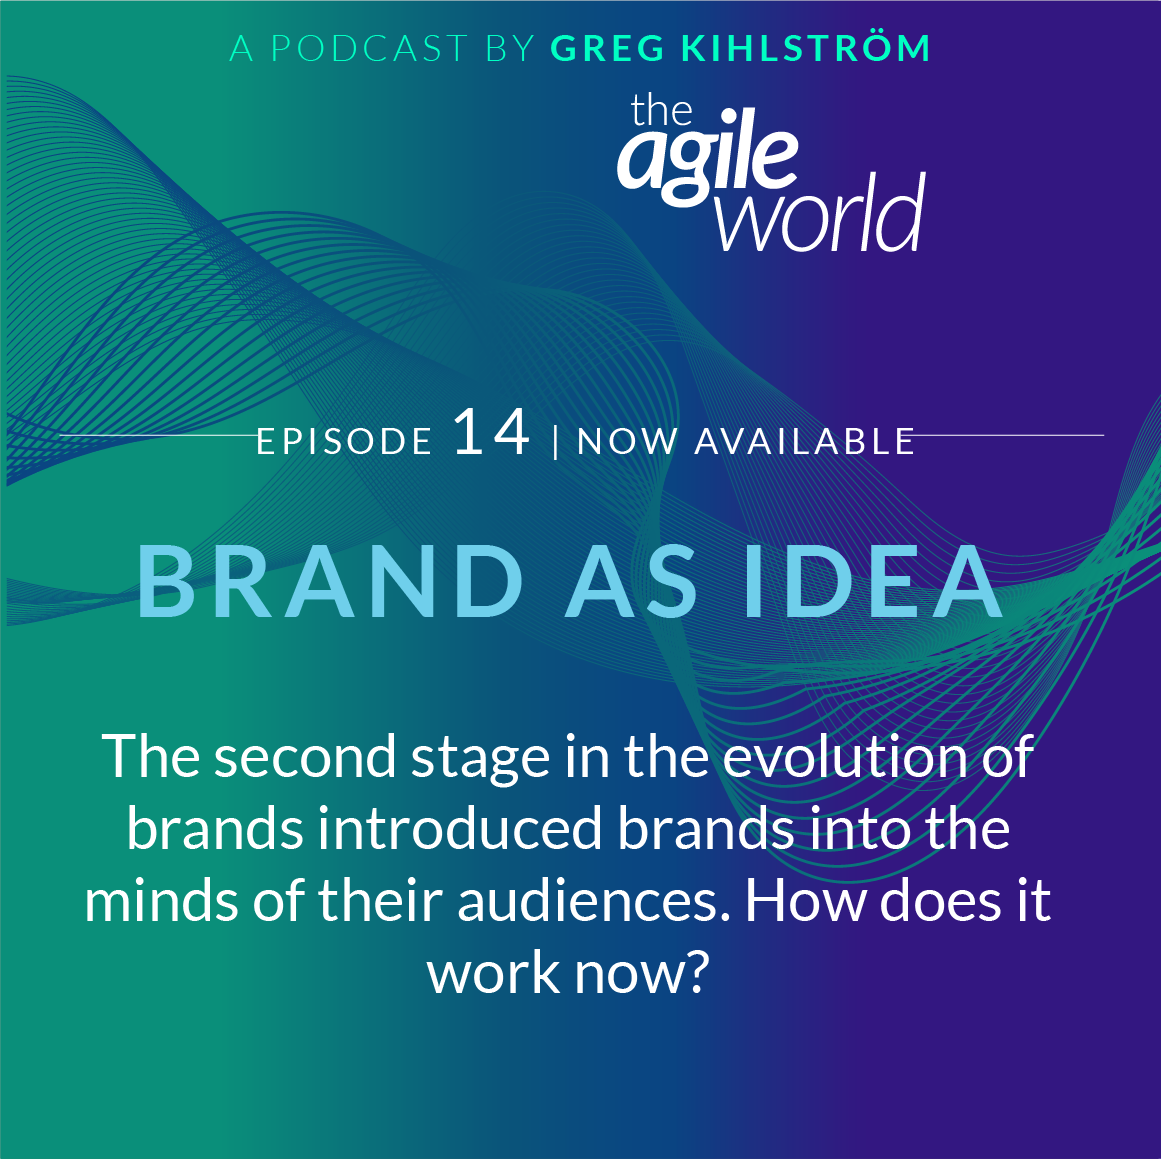 TheAgileWorld-Episode-14-Greg-Kihlstrom.png